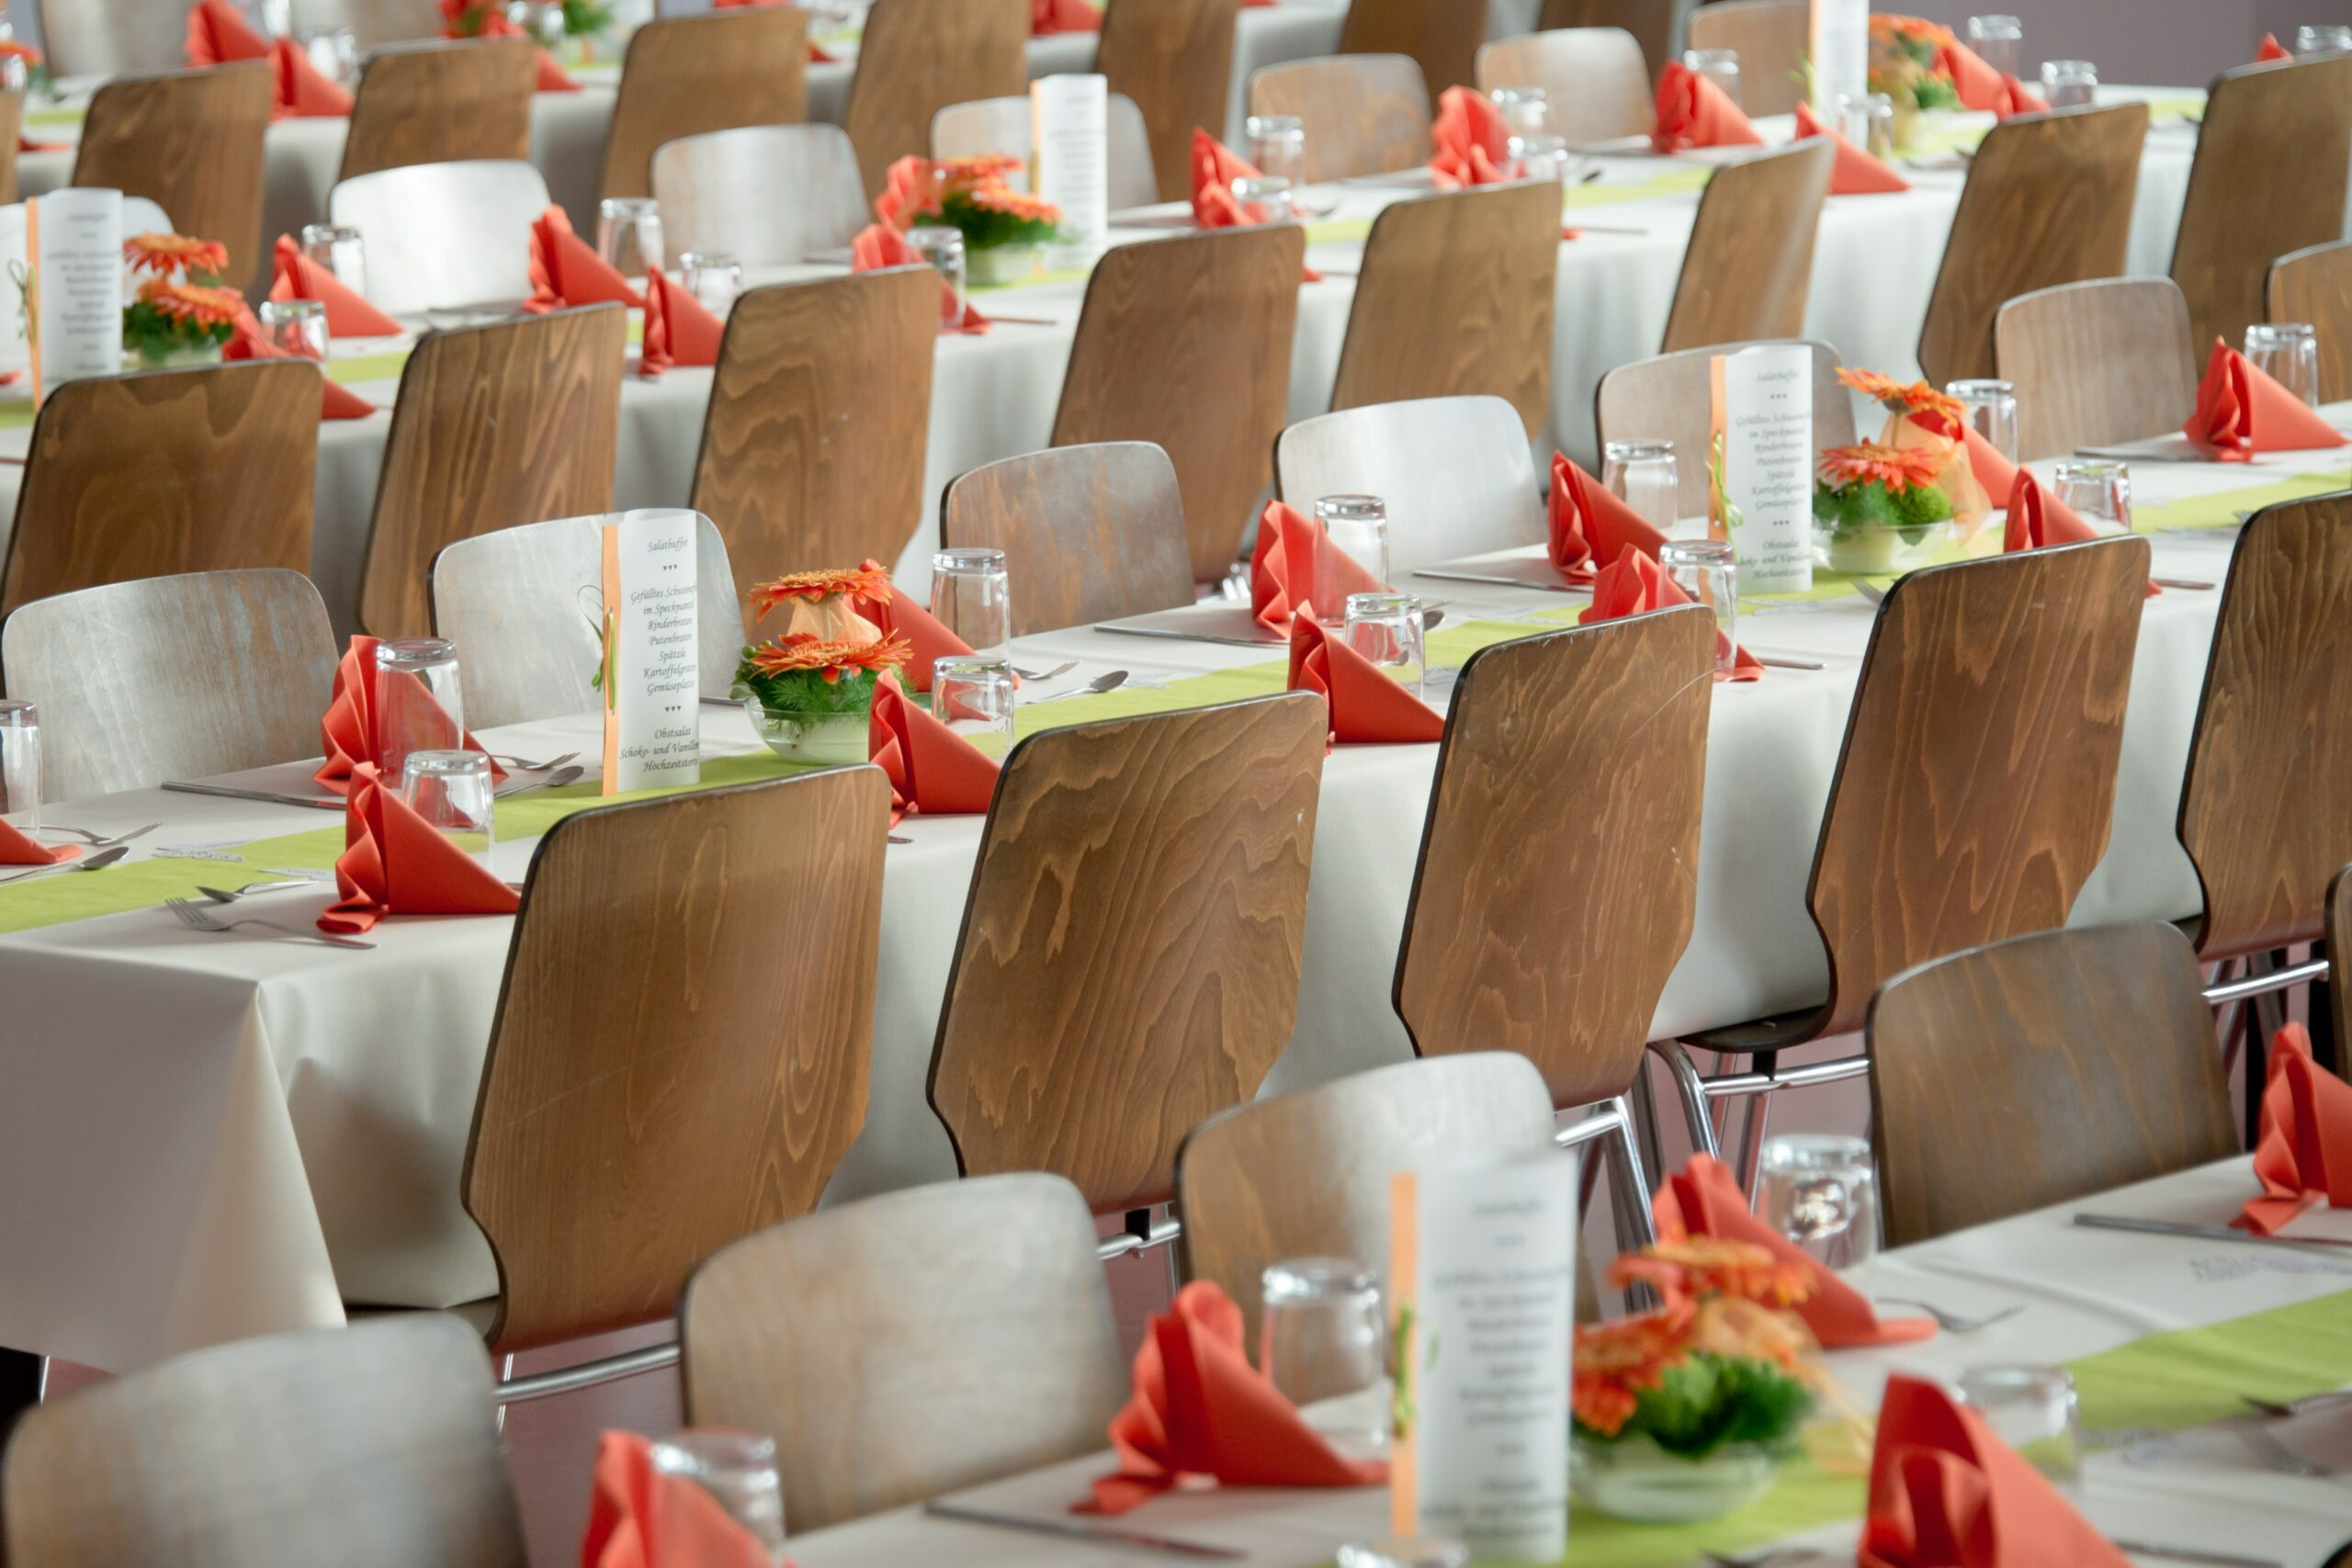 Corporate Event Catering, chef david's catered events, corporate catering